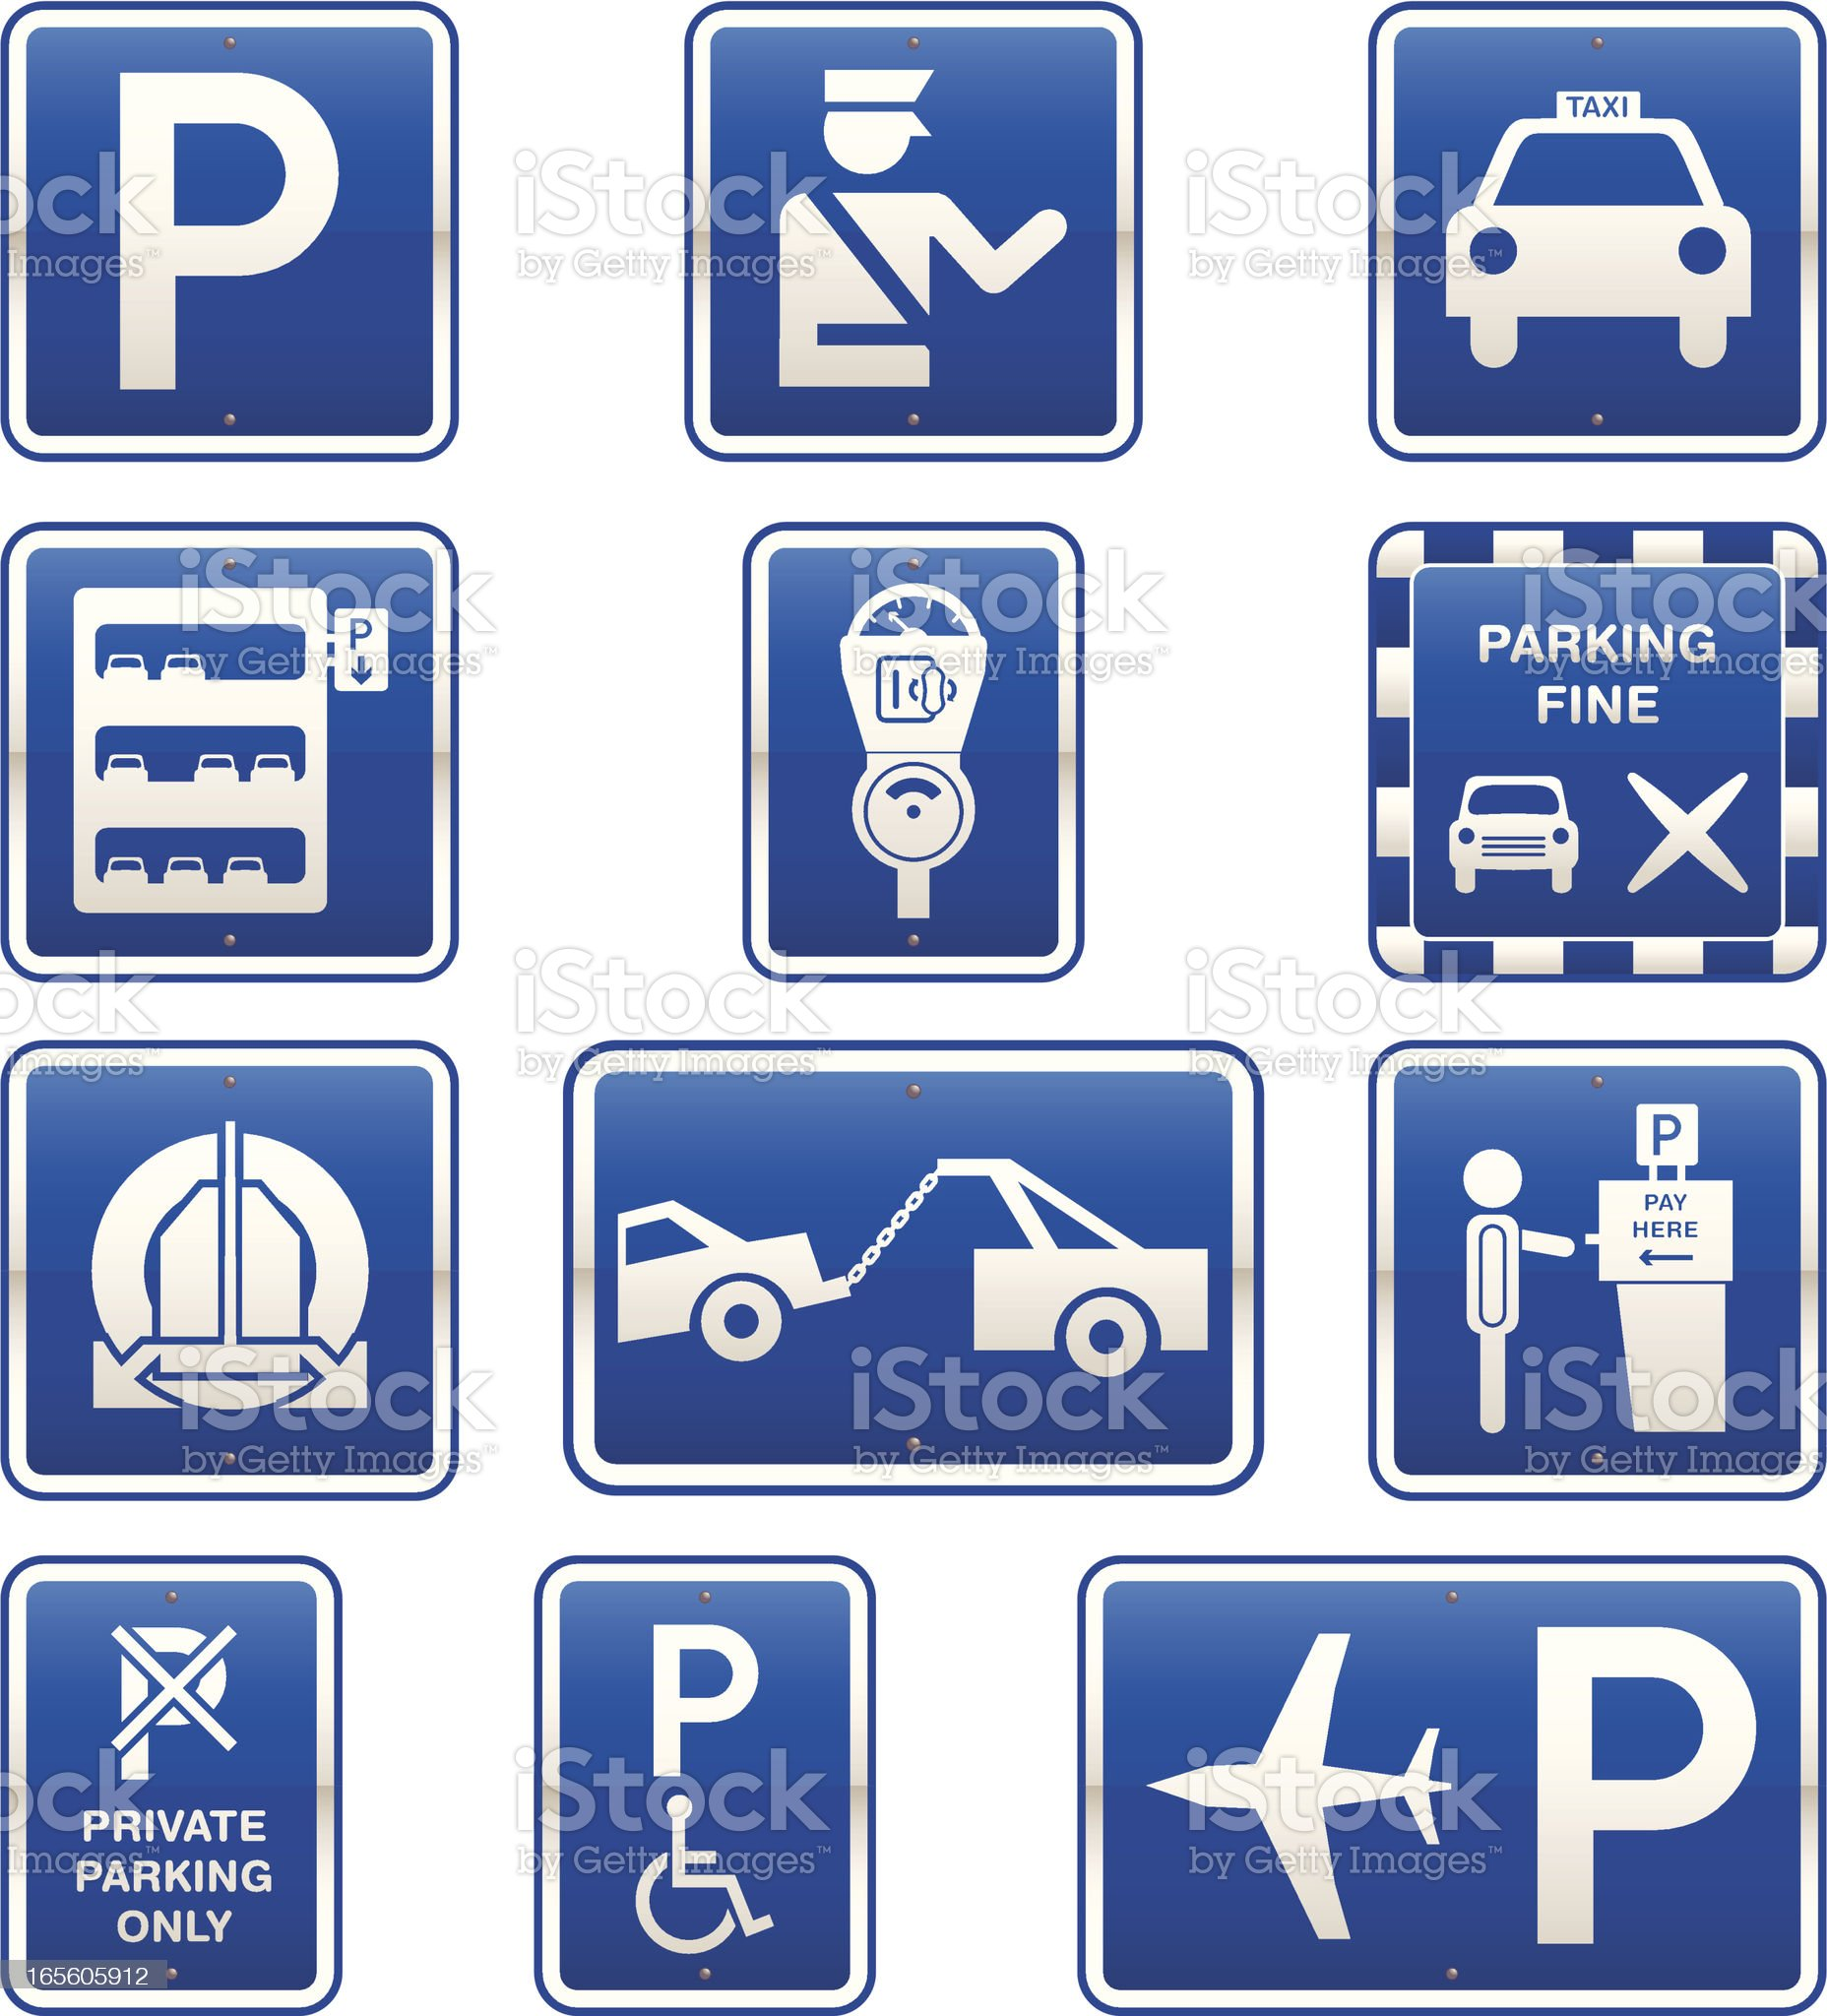 Car Parking Signs Icon Set royalty-free stock vector art